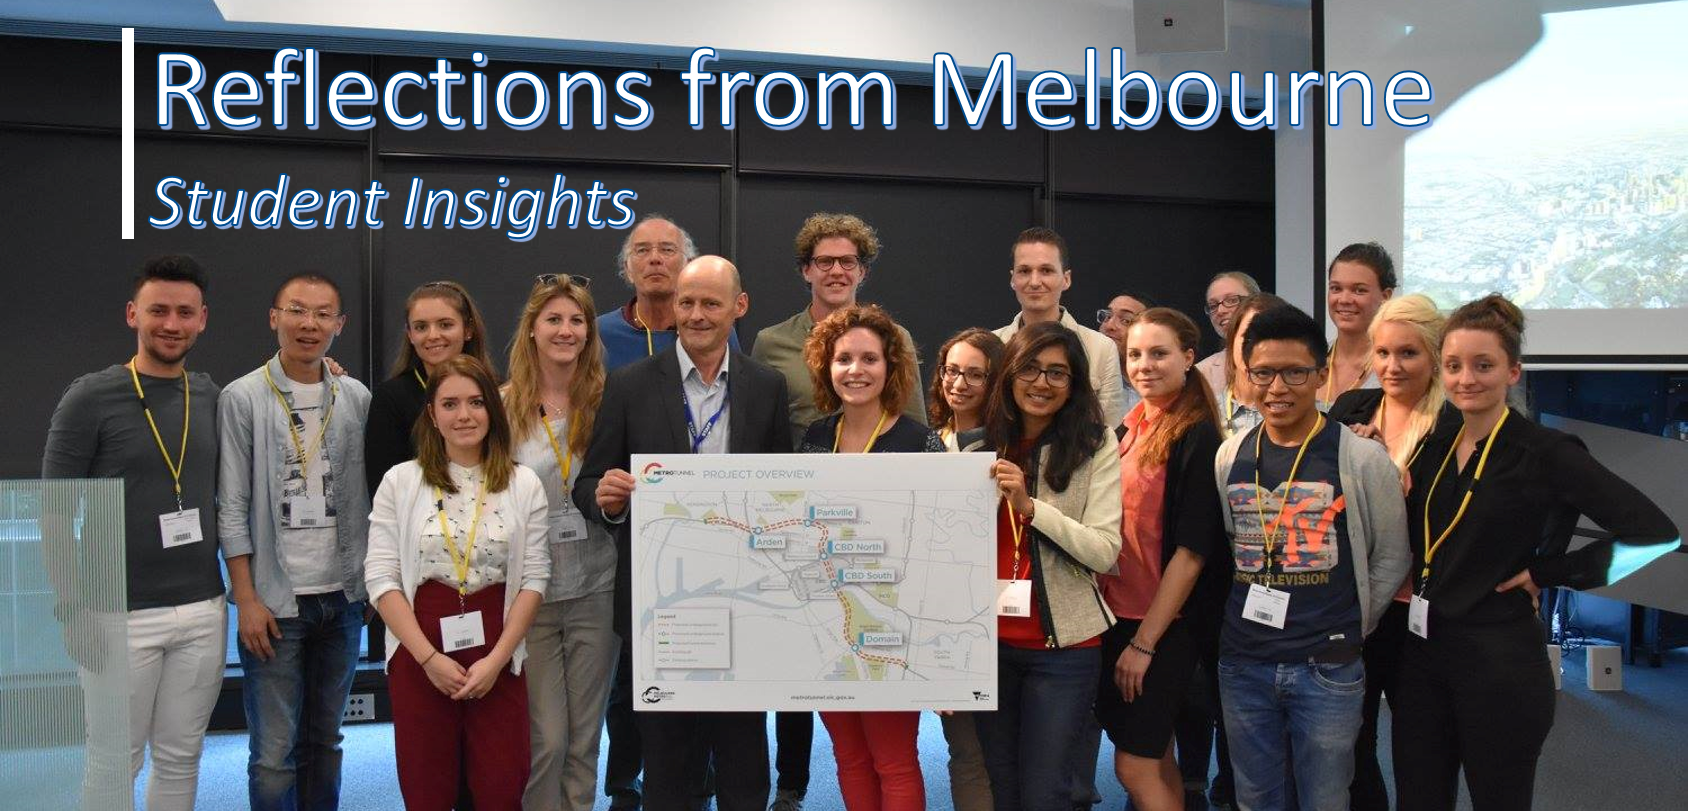 Student Insights: Reflections from Melbourne